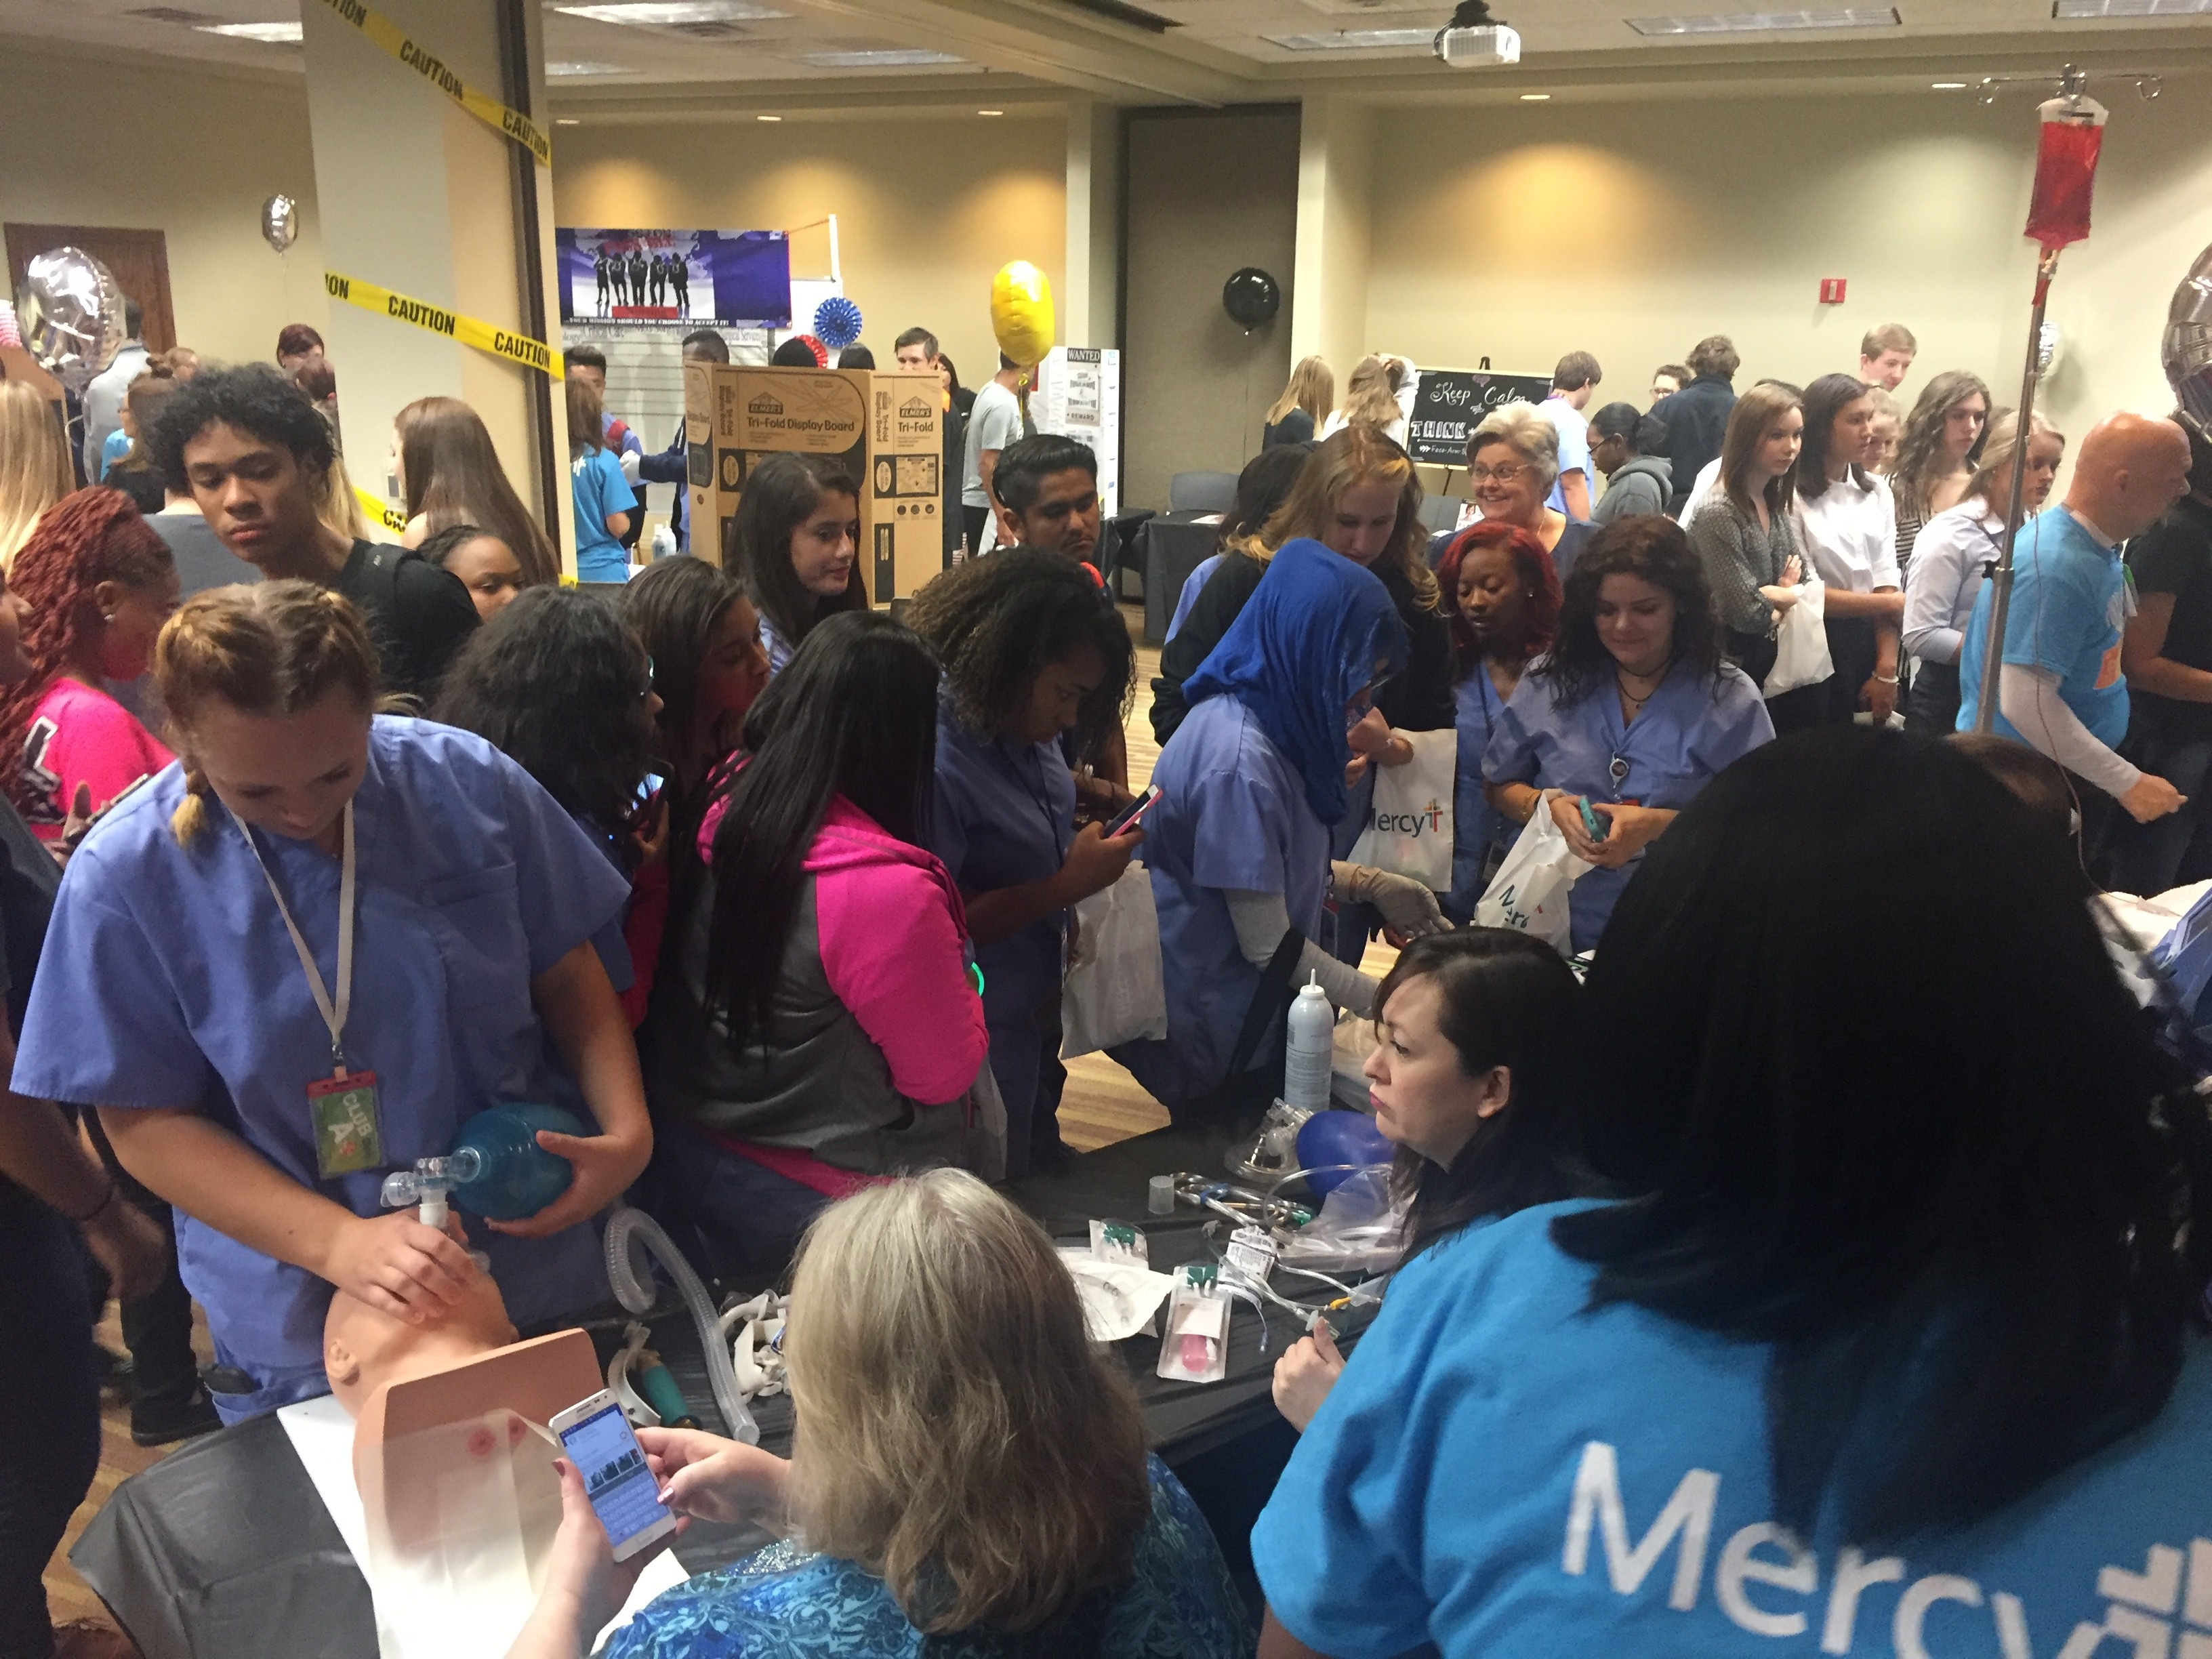 More than 1,200 students from 12 metro-area schools attended Mercy's High School Career Exploration Day at Mercy Hospital Oklahoma City